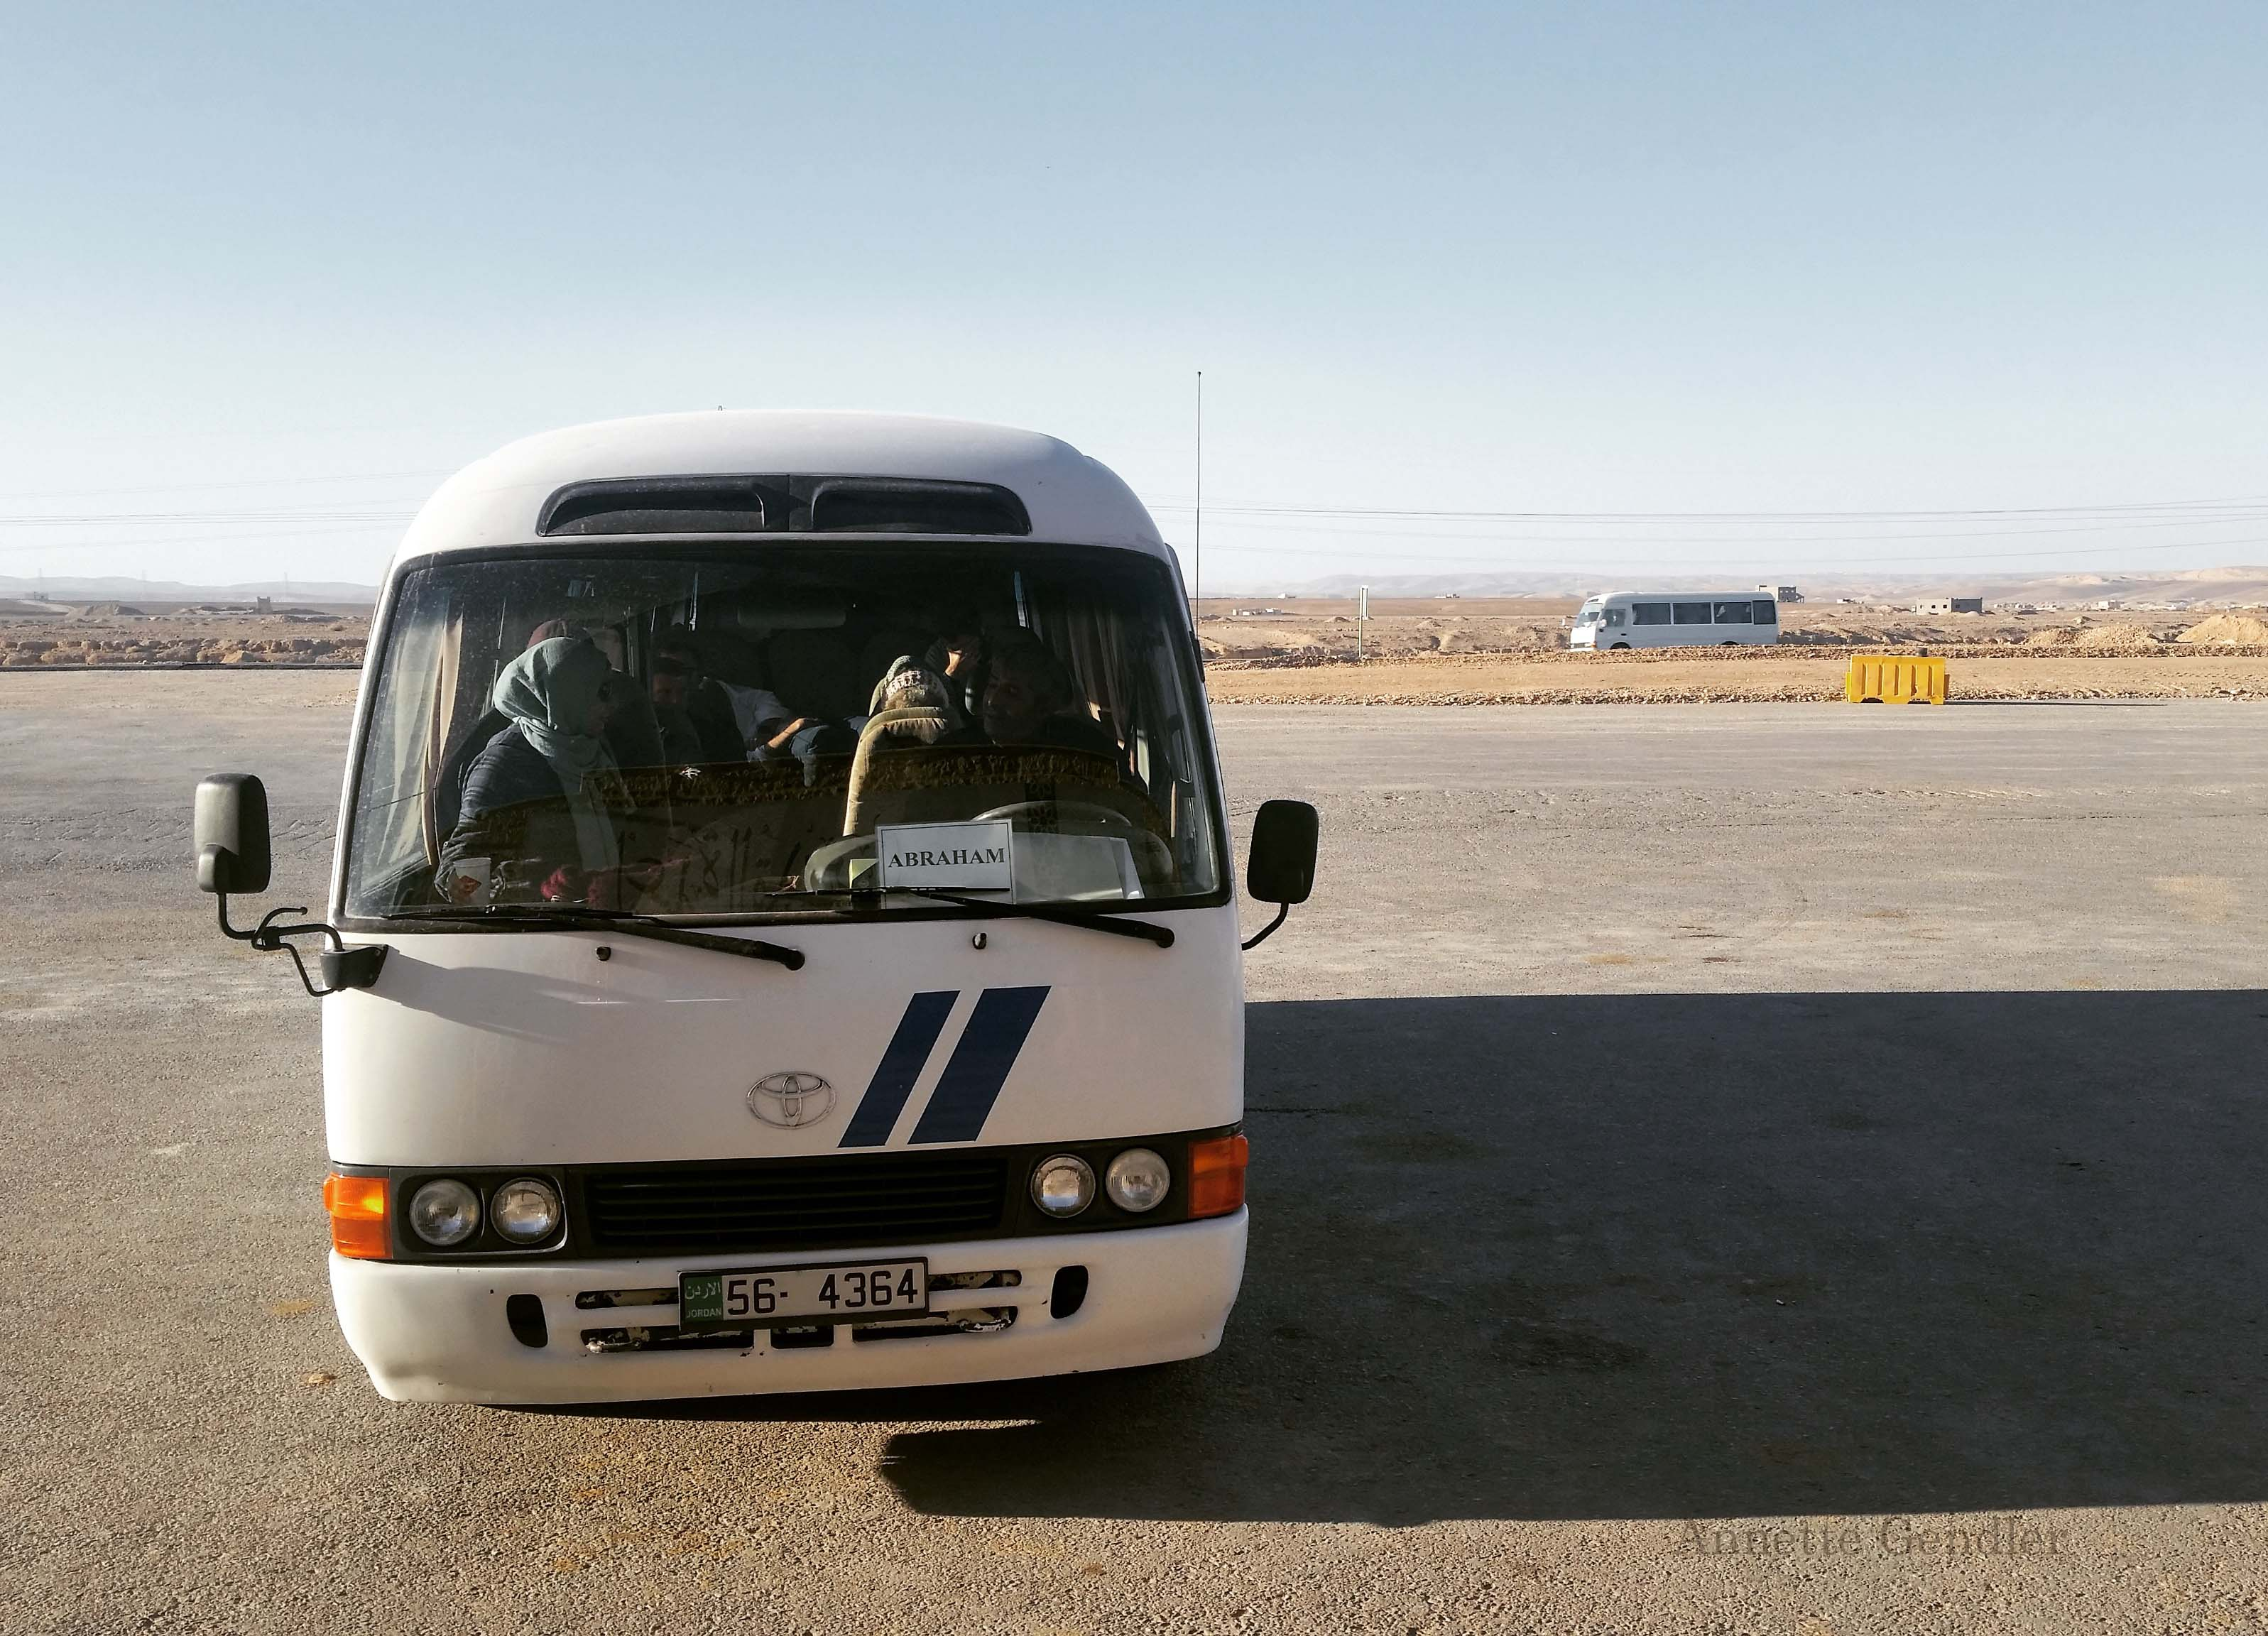 small tour bus shown in Jordanian desert